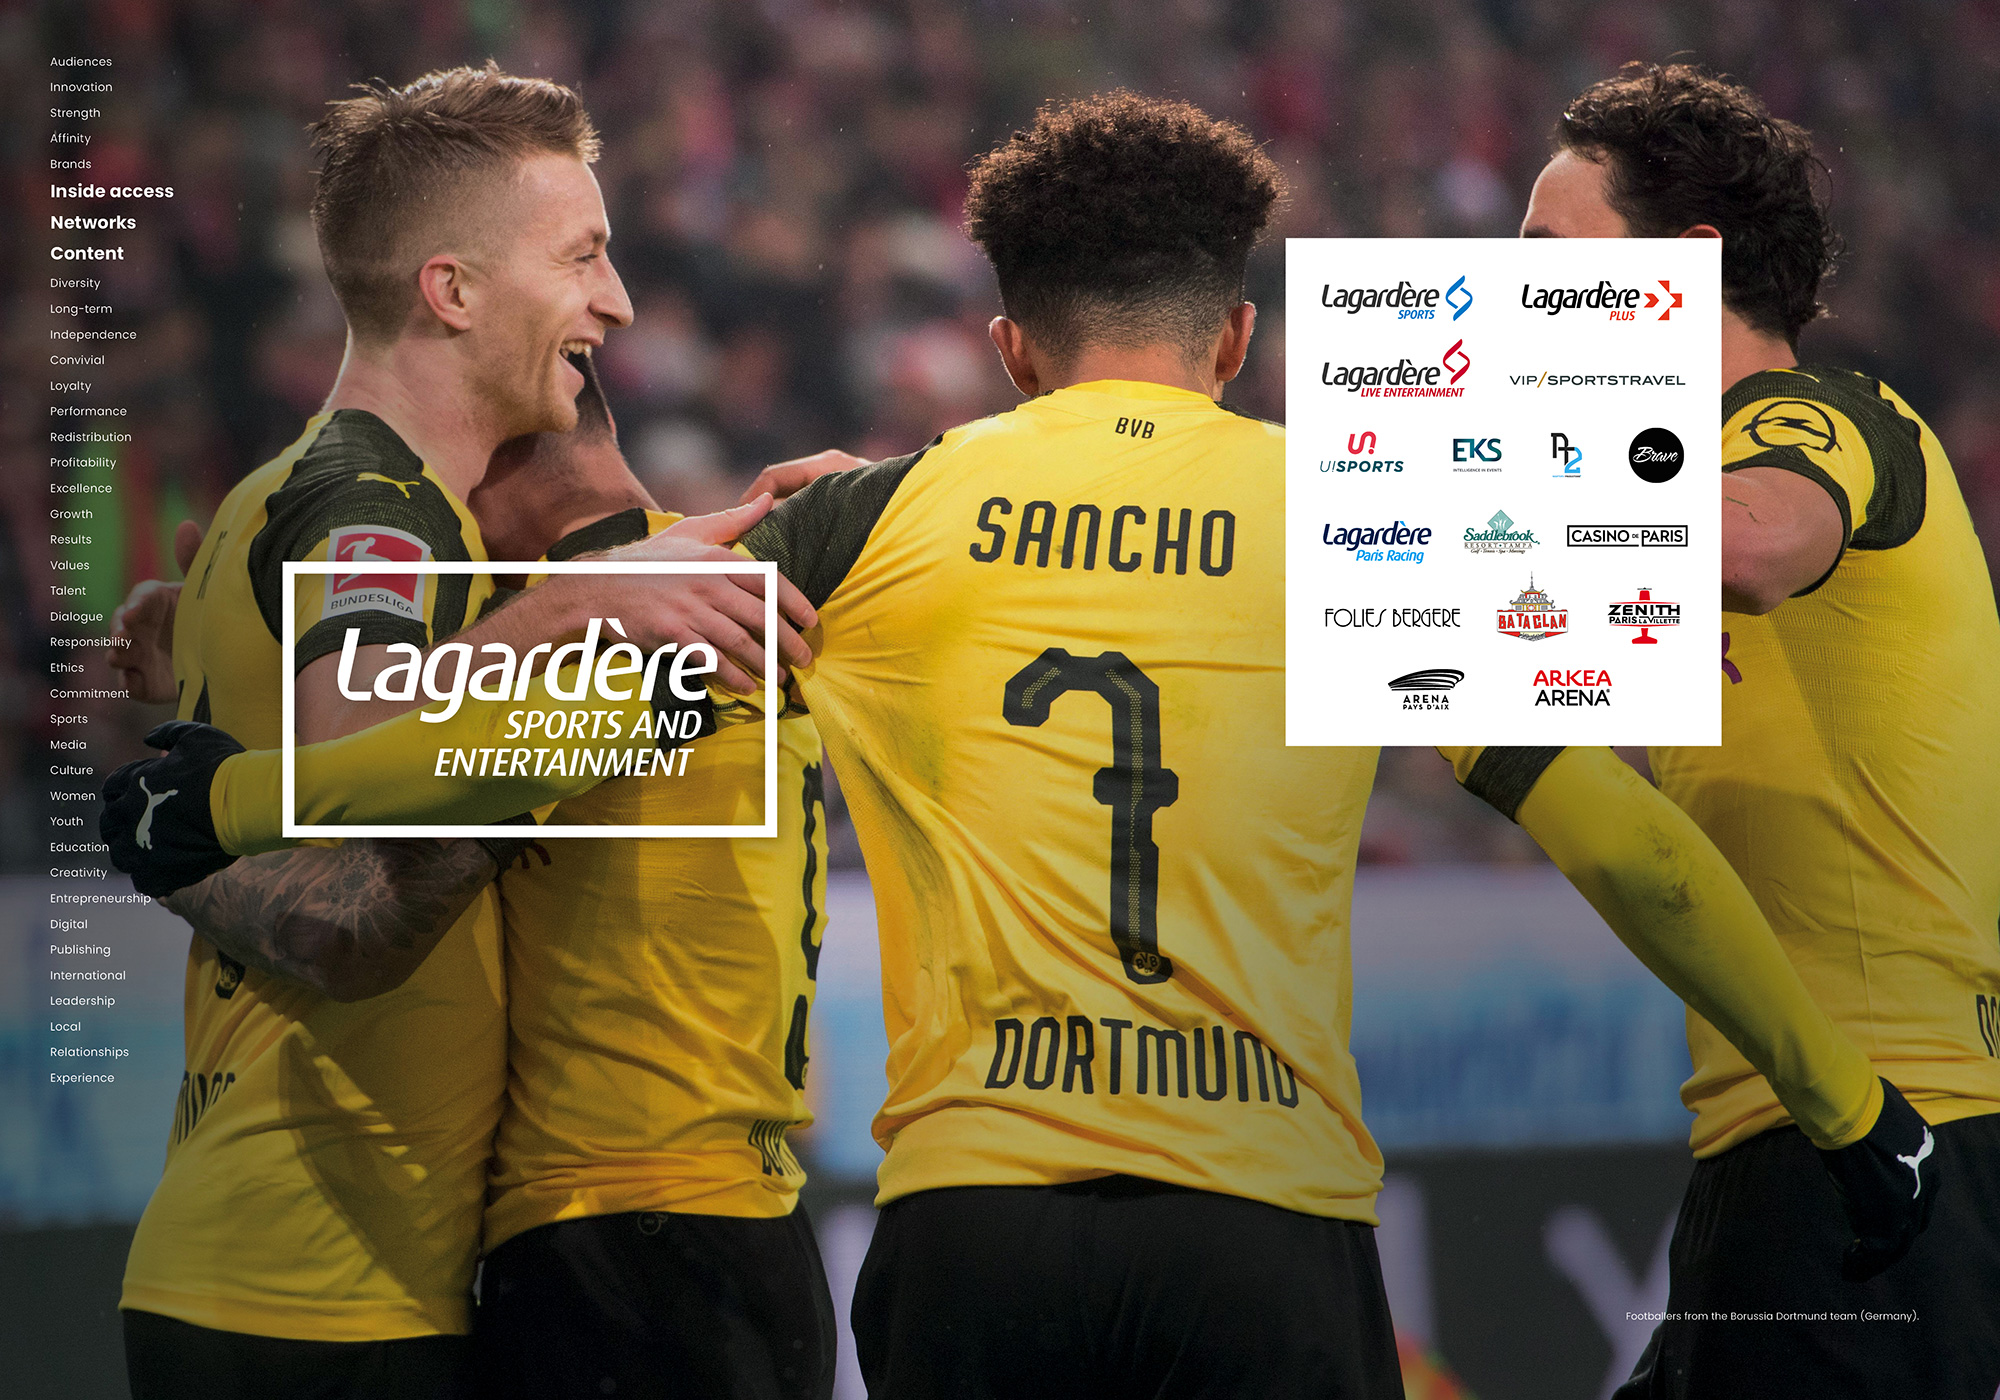 Lagardère Sports and Entertainment – Soccer Players from the Borussia Dortmund team (Germany).